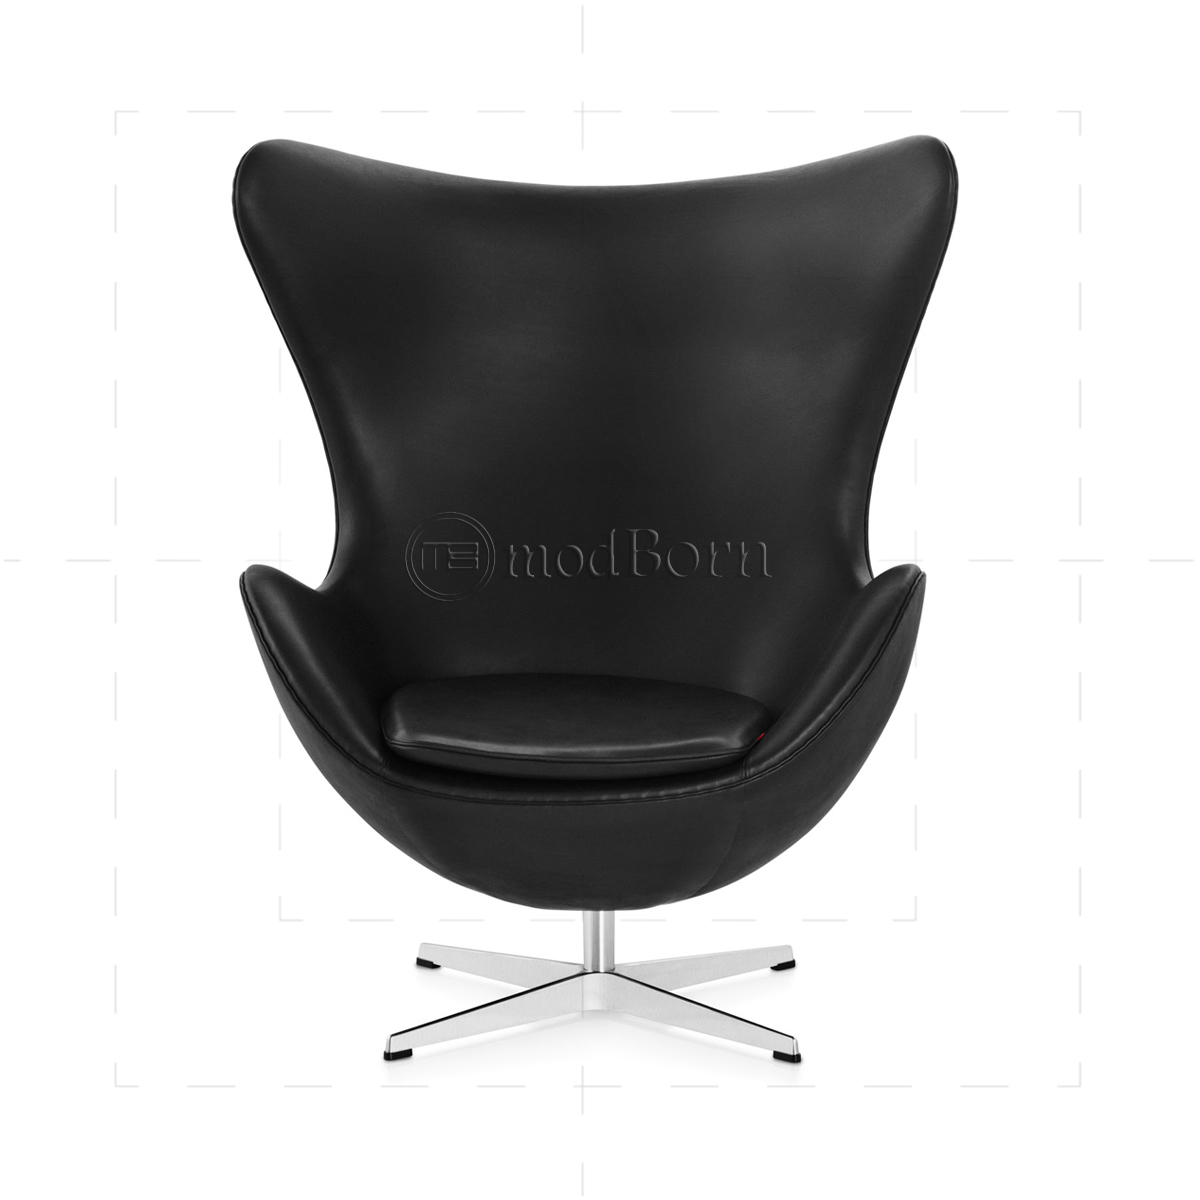 Arne Jacobsen Egg Chair Replica Arne Jacobsen Style Egg Chair Black Leather Replica